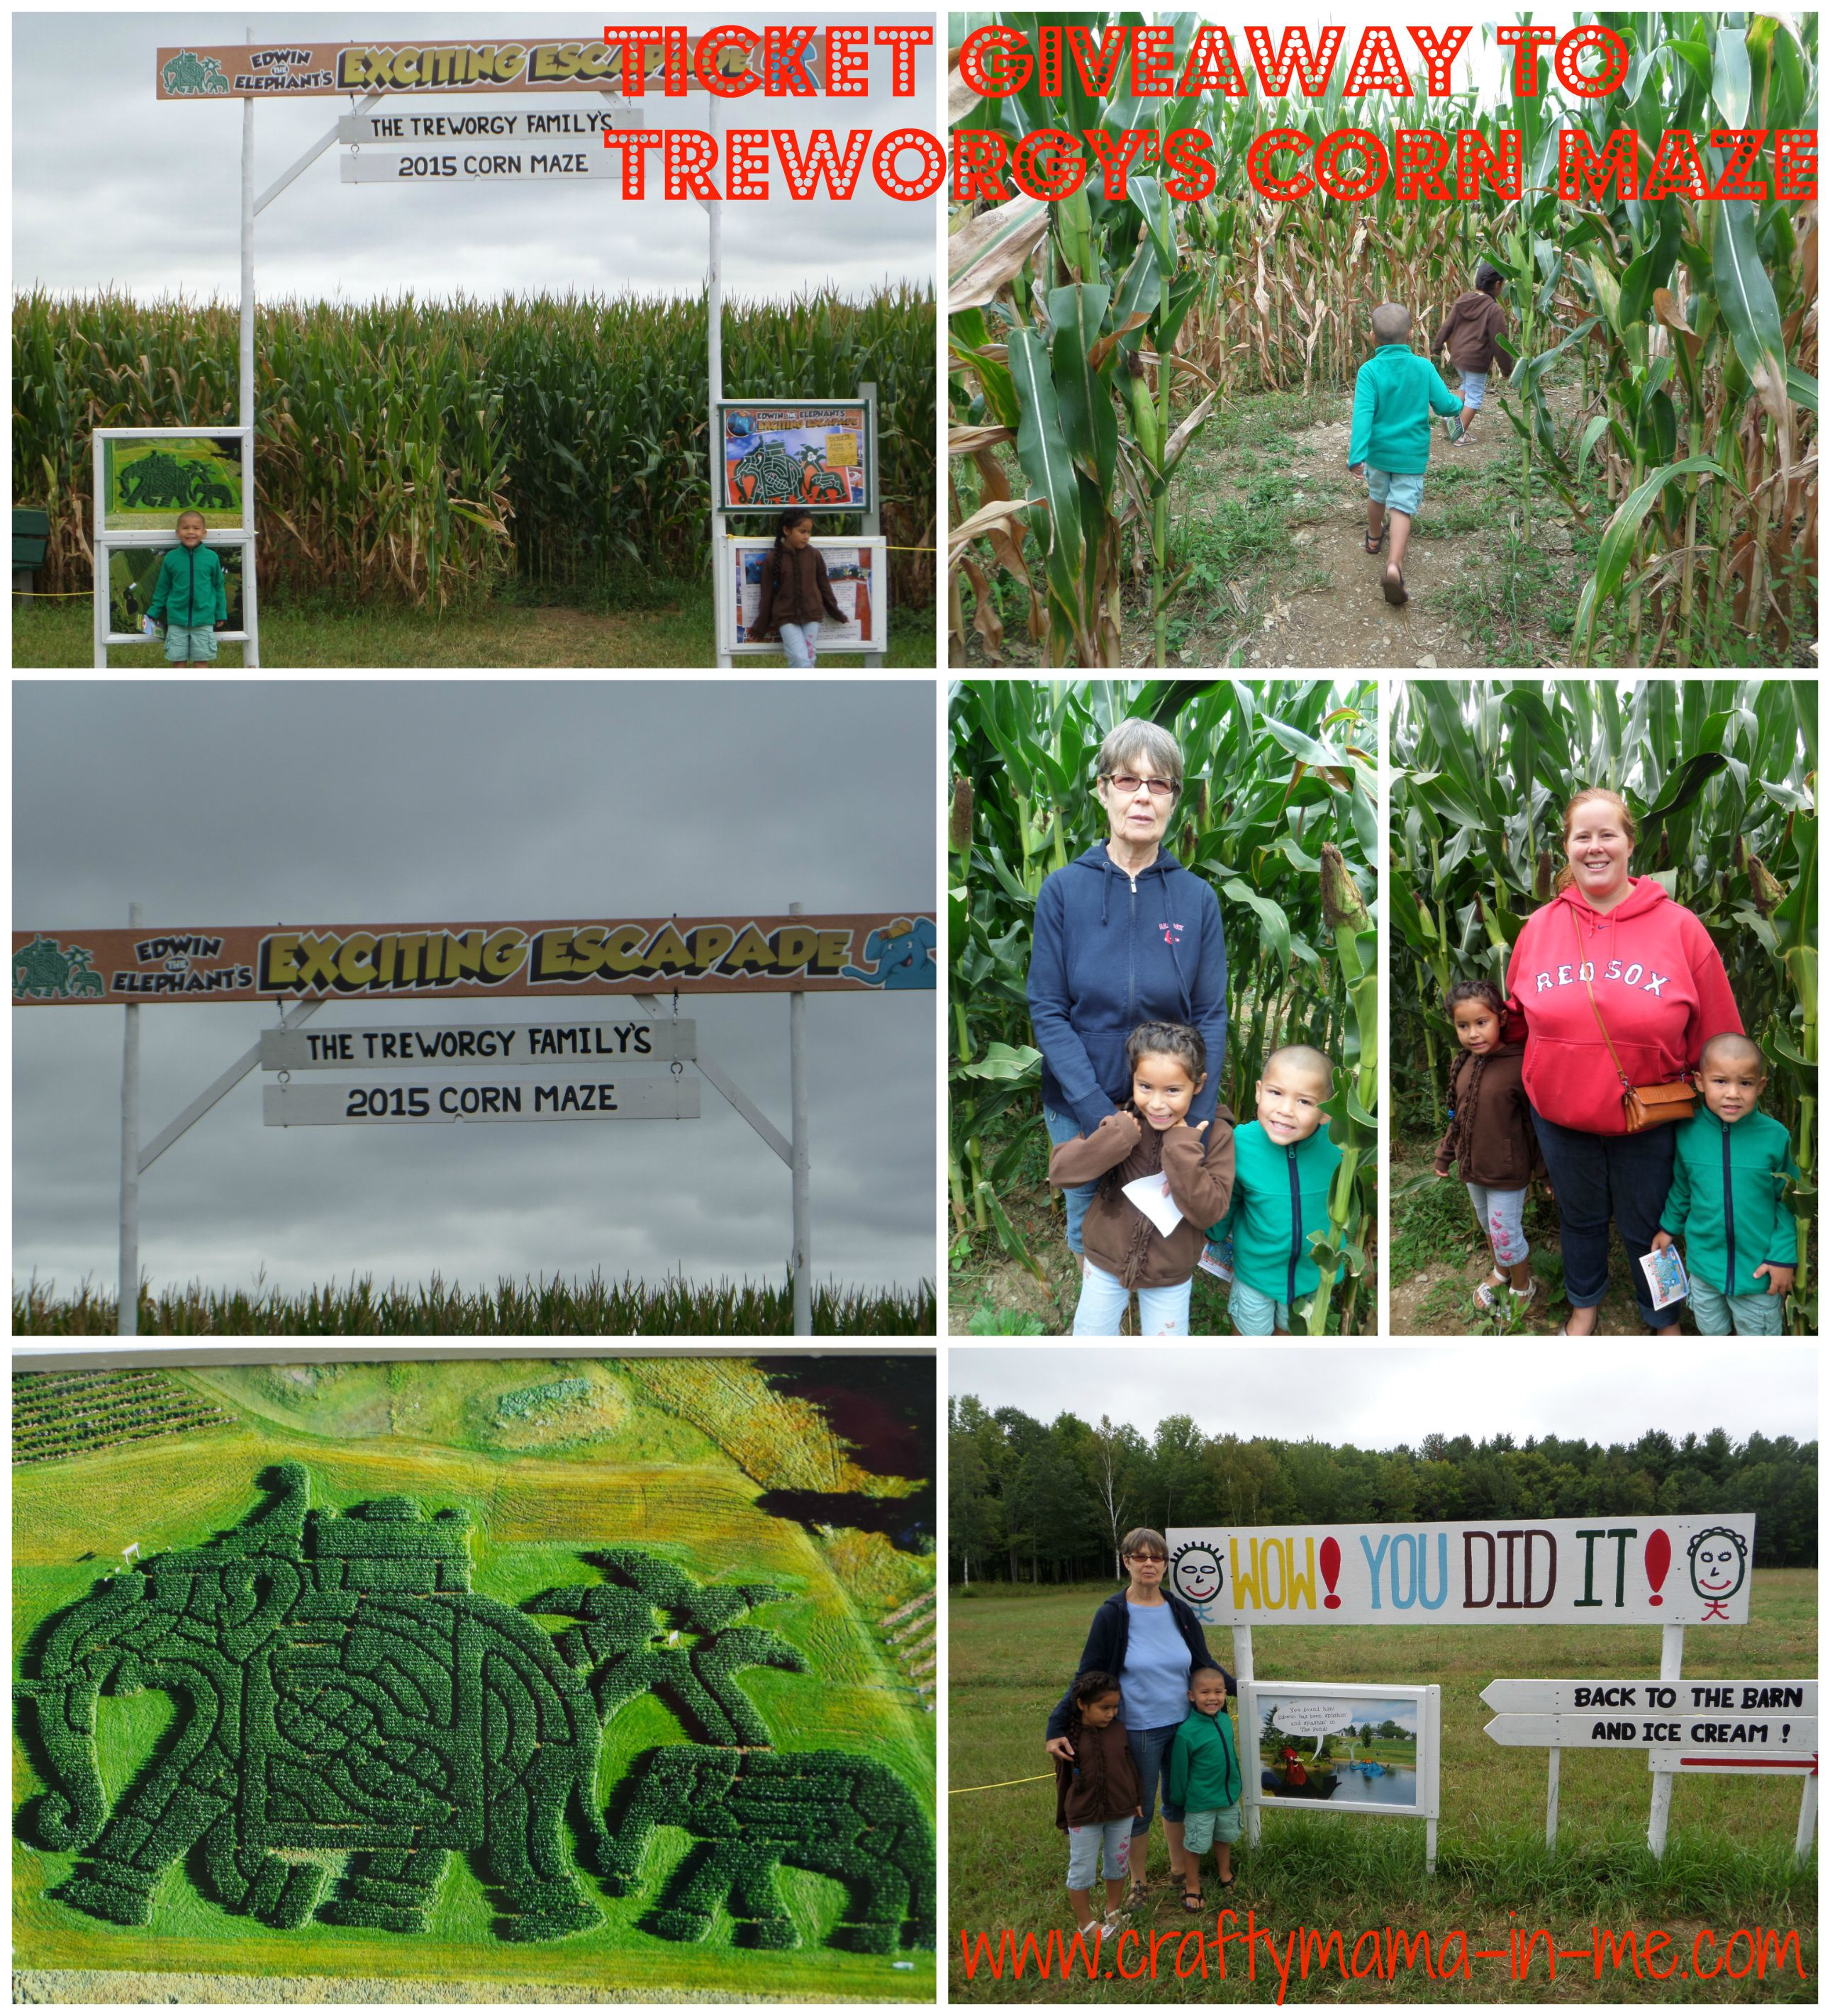 Ticket Giveaway to the Treworgy's Corn Maze